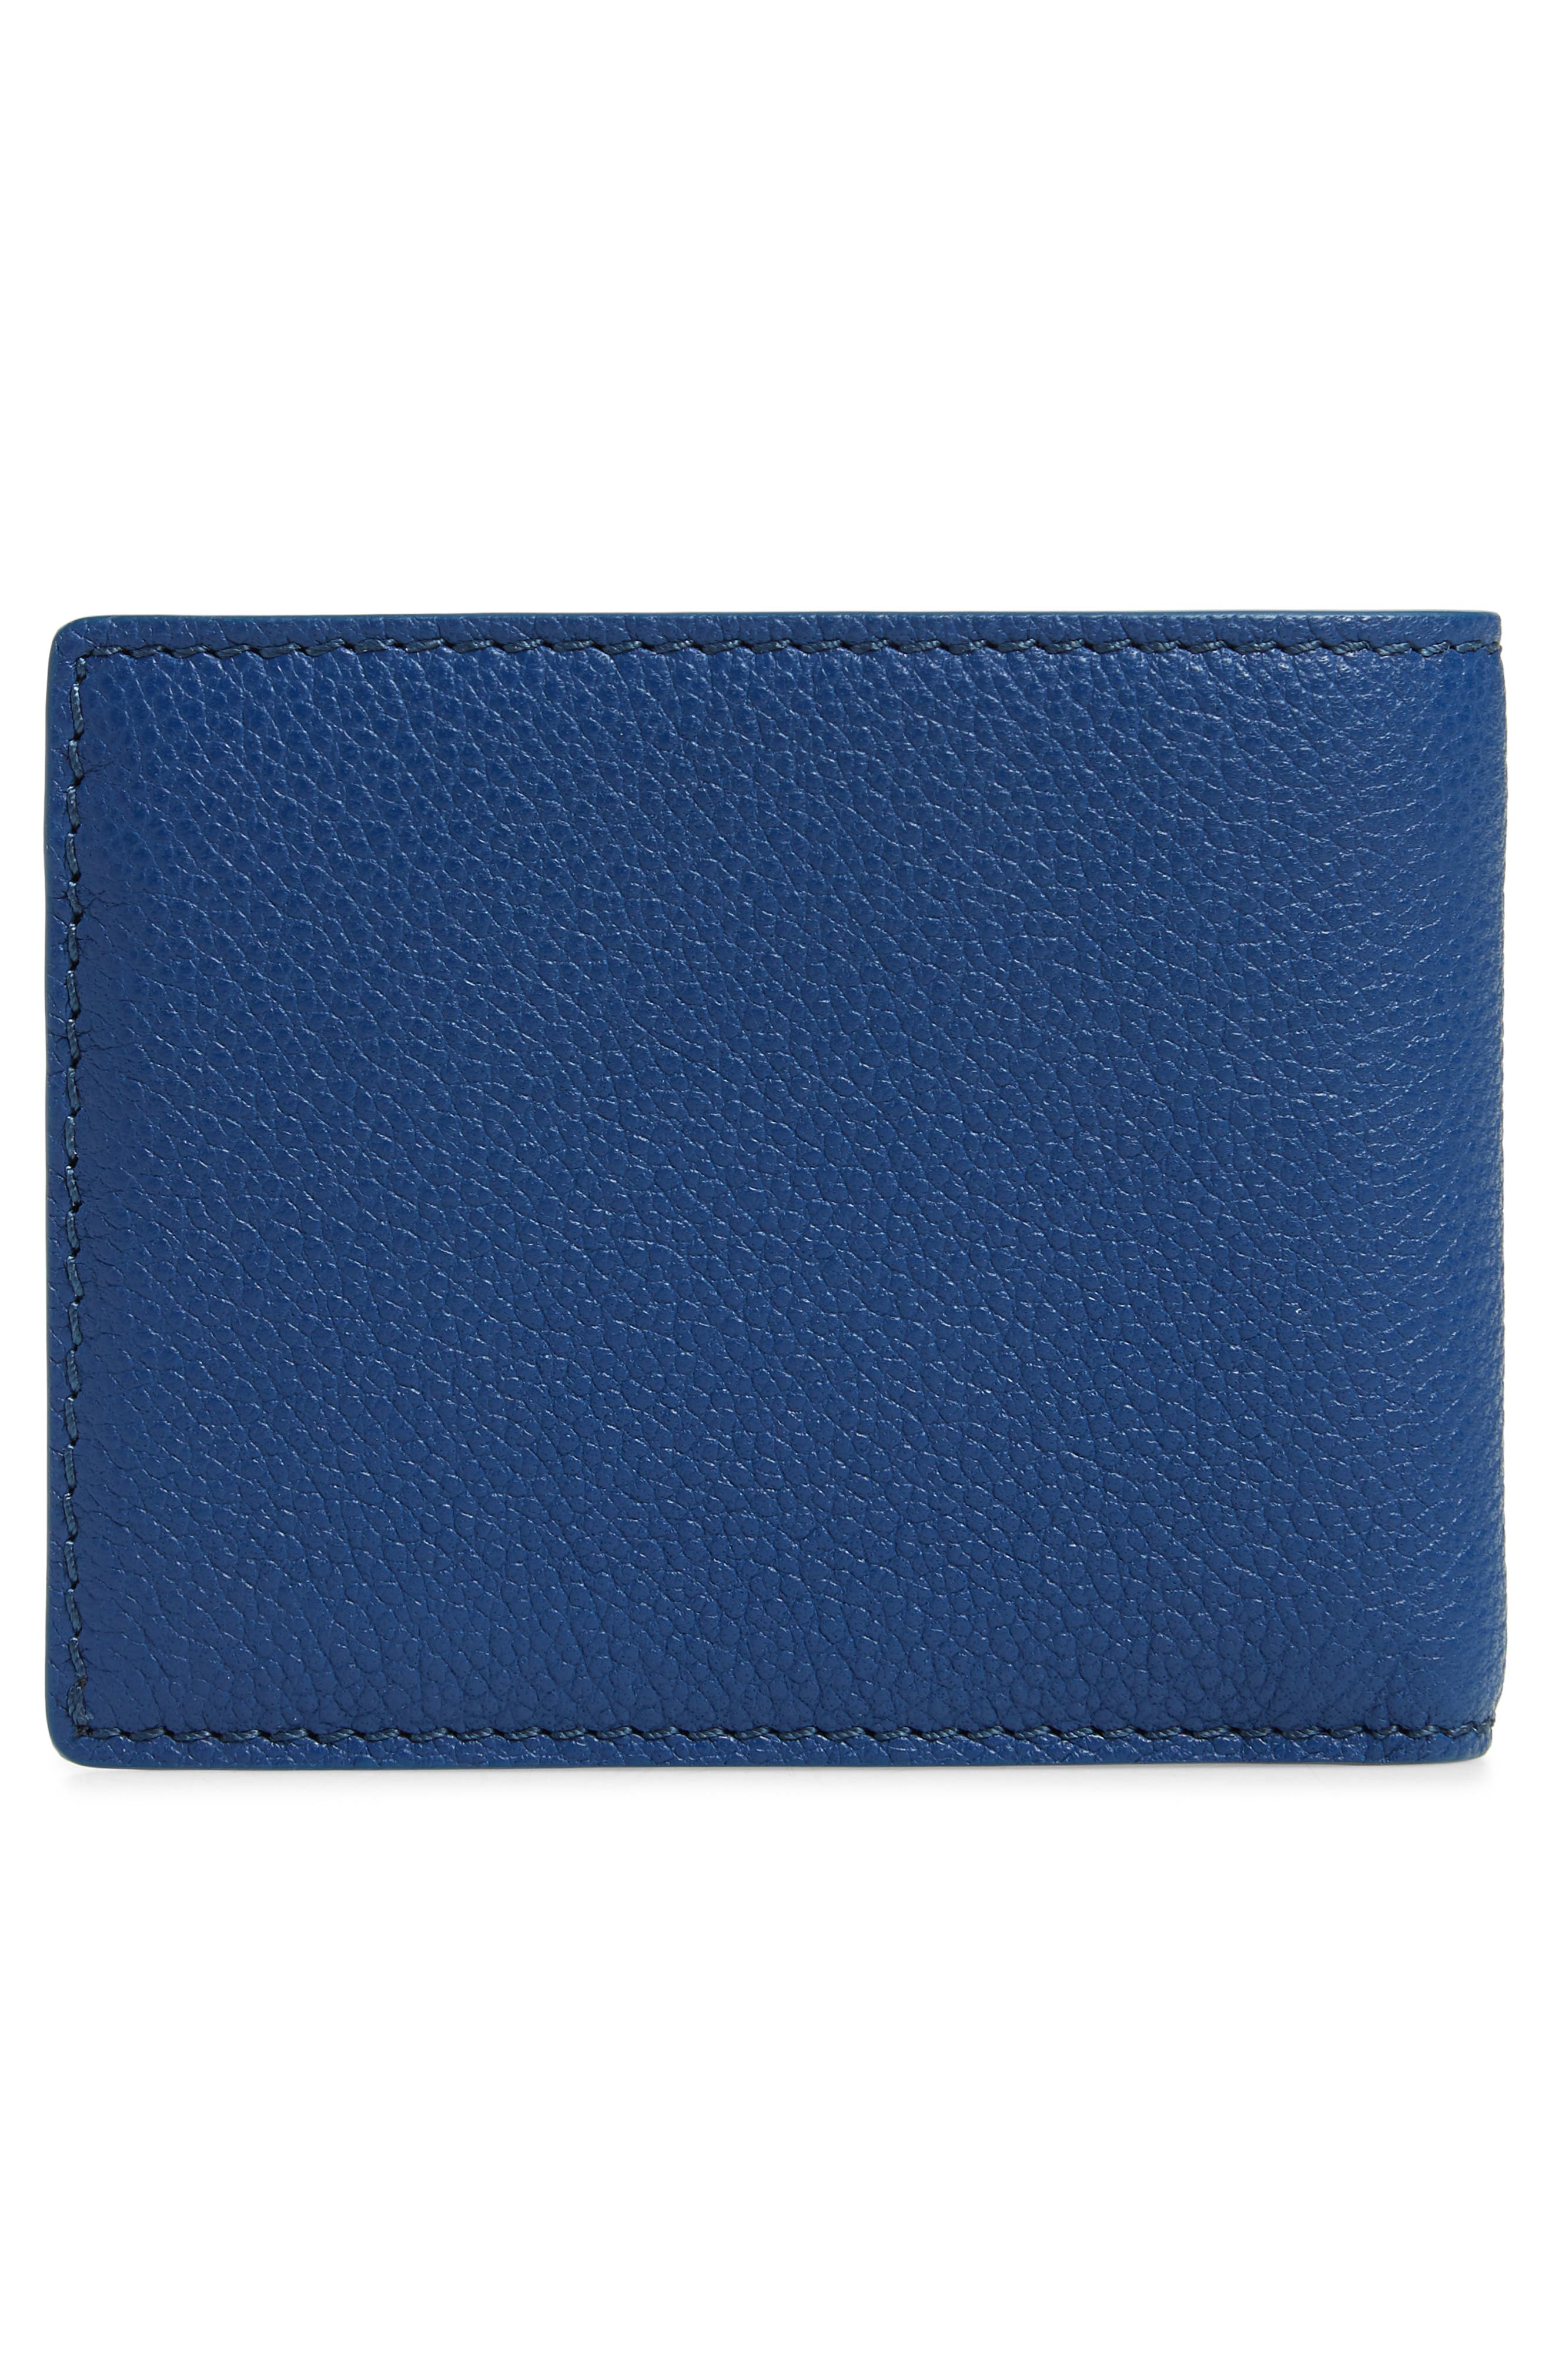 Bifold Leather Wallet,                             Alternate thumbnail 3, color,                             BRIGHT ULTRAMARINE